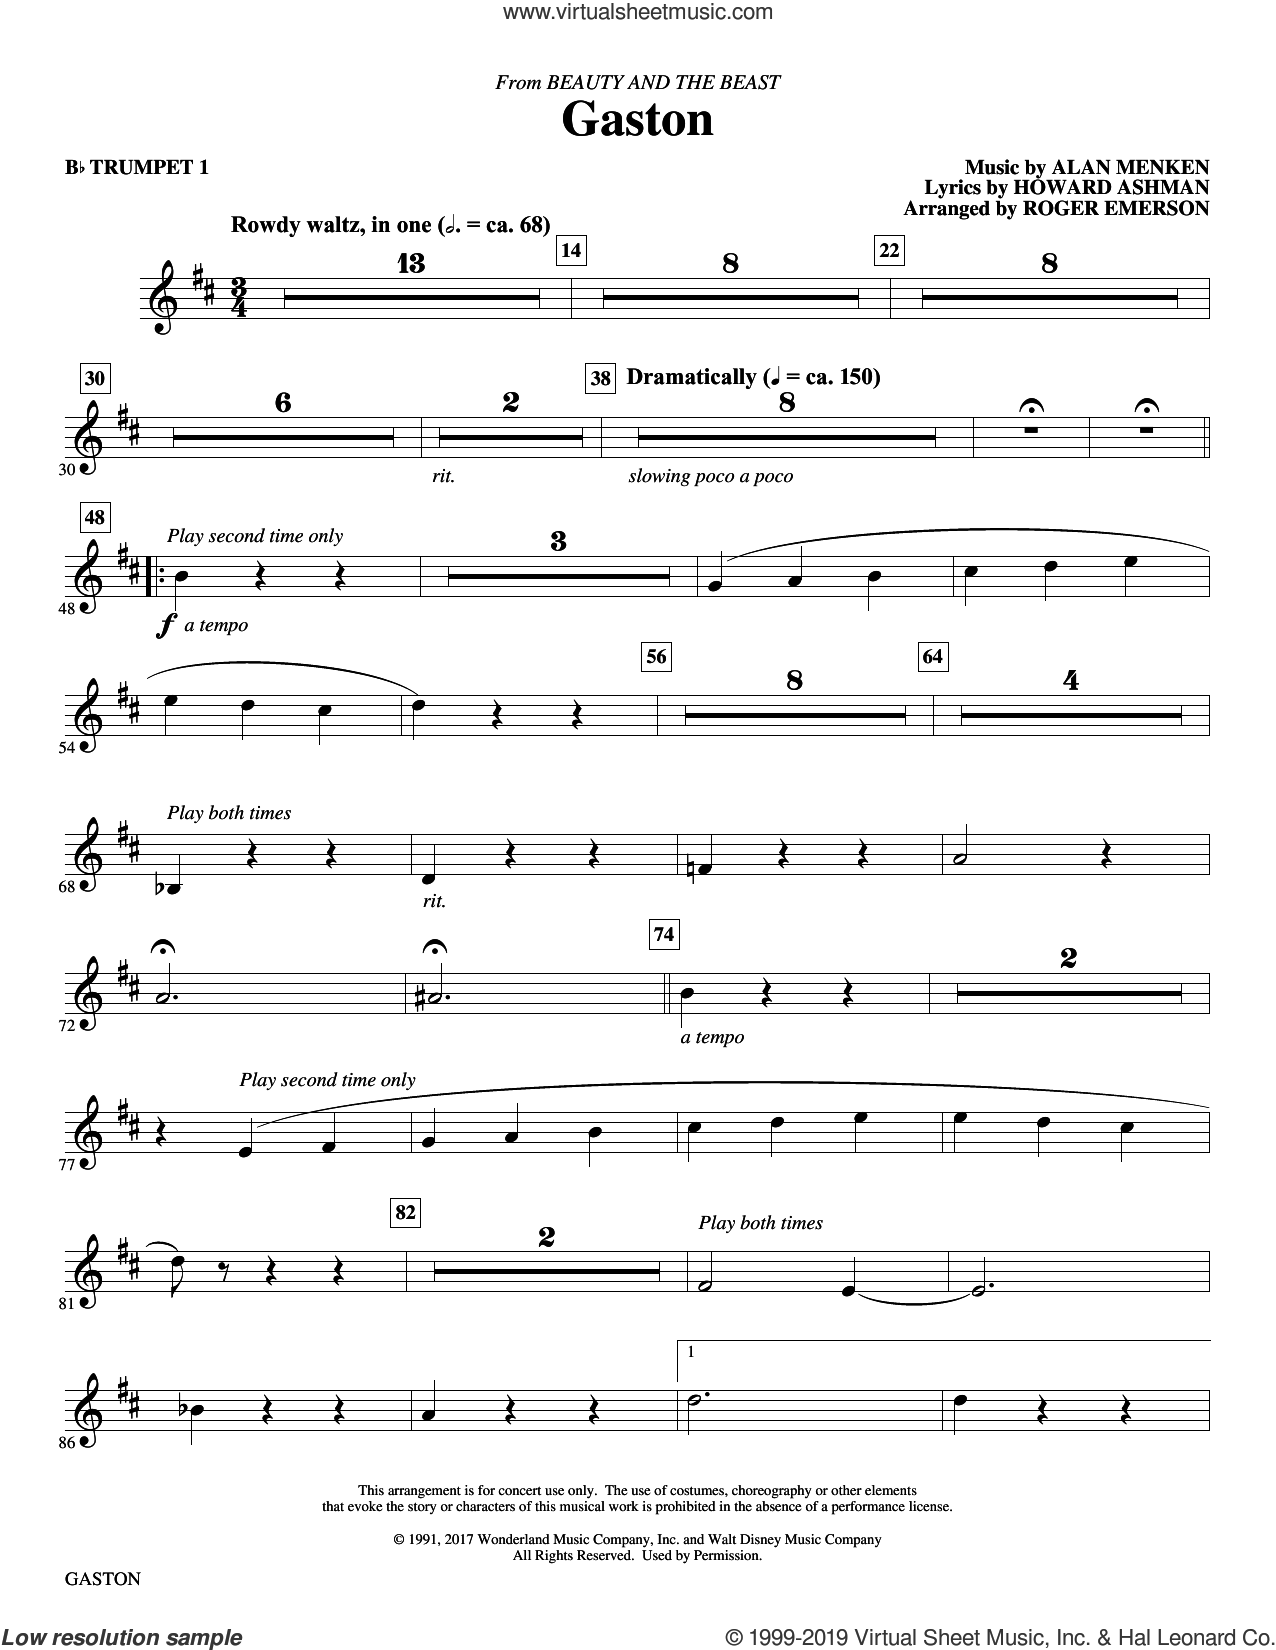 Gaston (from Beauty and The Beast) (arr. Roger Emerson) sheet music for orchestra/band (Bb trumpet 1) by Alan Menken, Roger Emerson and Howard Ashman, intermediate skill level